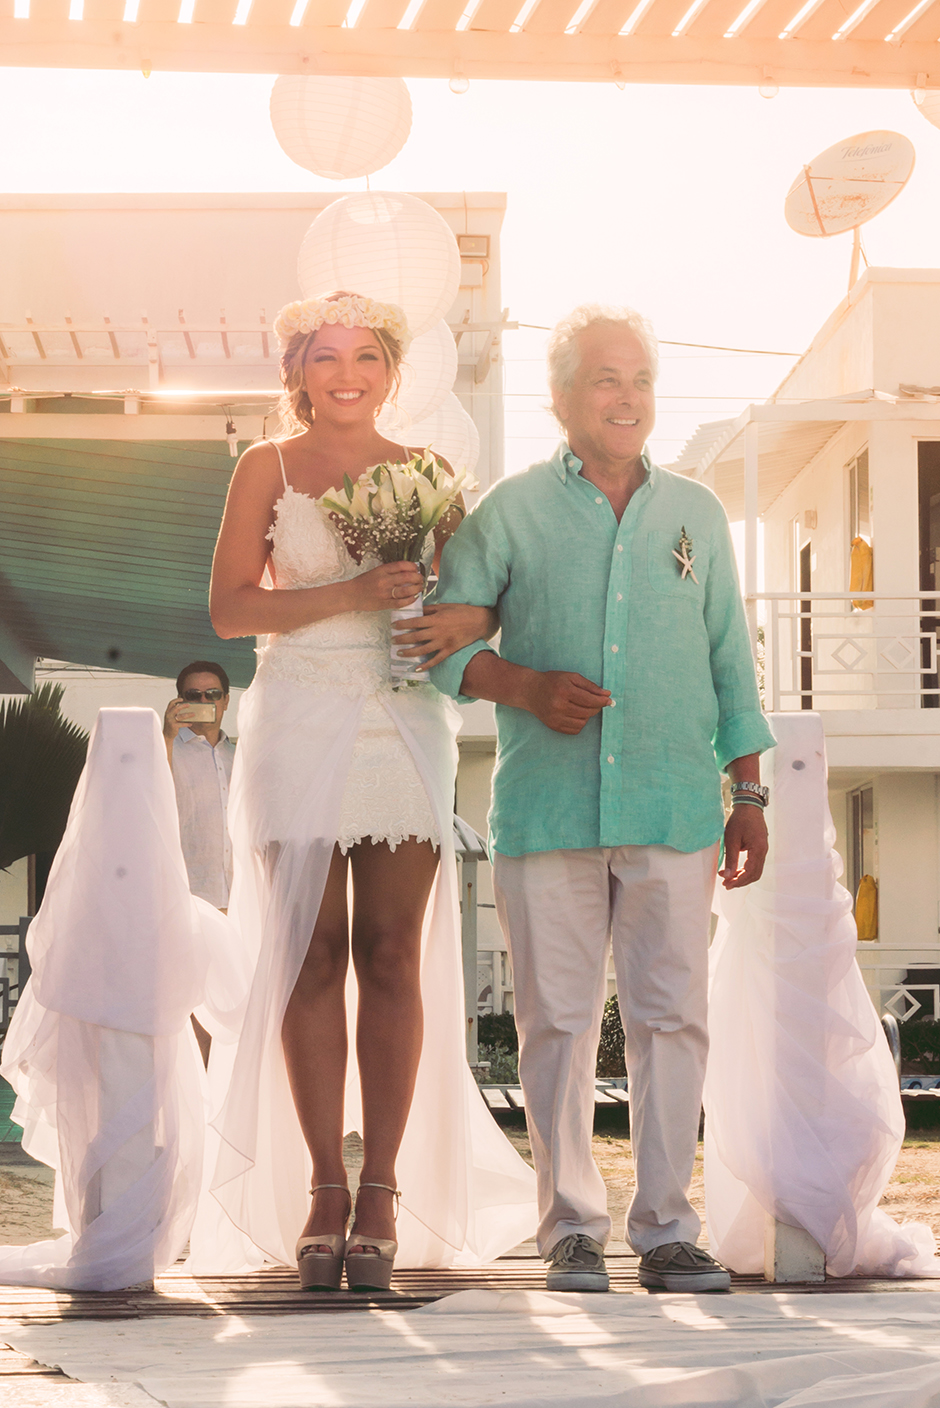 boda fotos bodas destino destination wedding san andres islands wedding destination 22